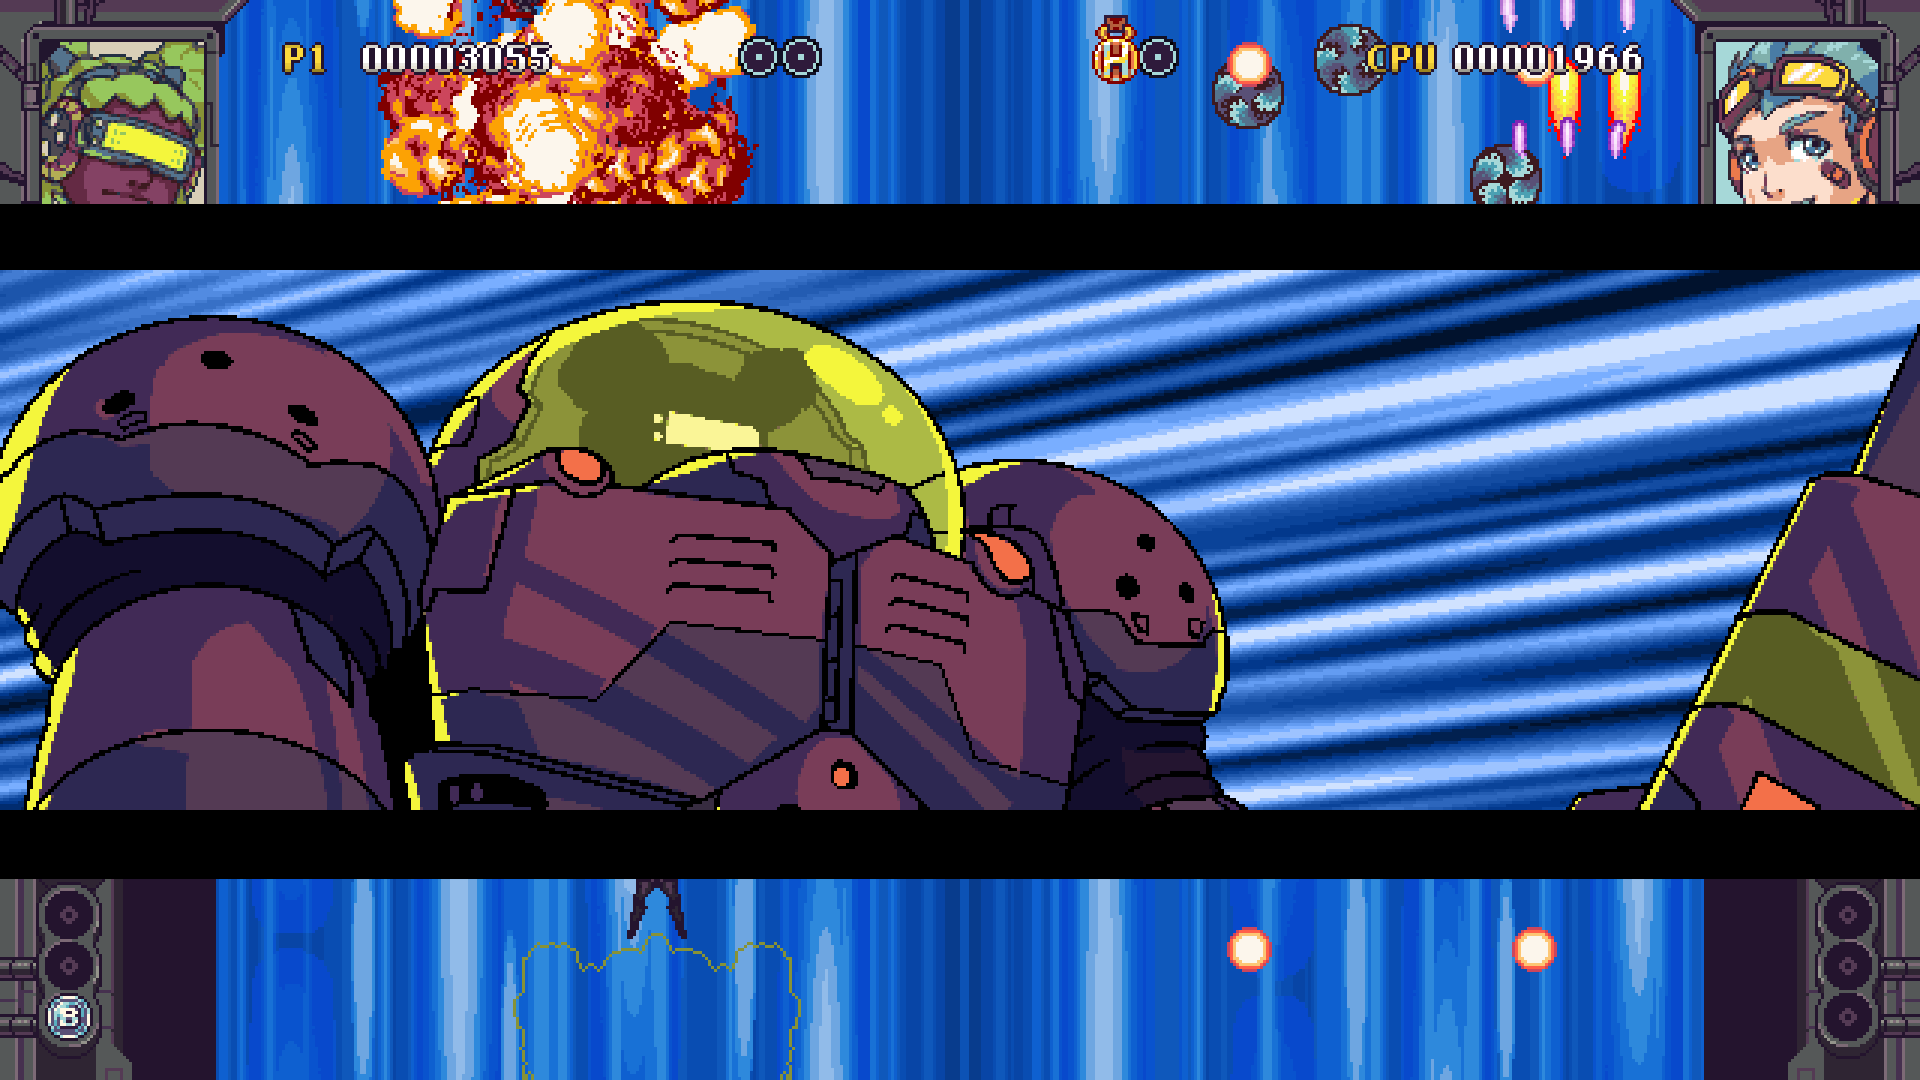 Rival Megagun gameplay screenshot 8 thumbnail